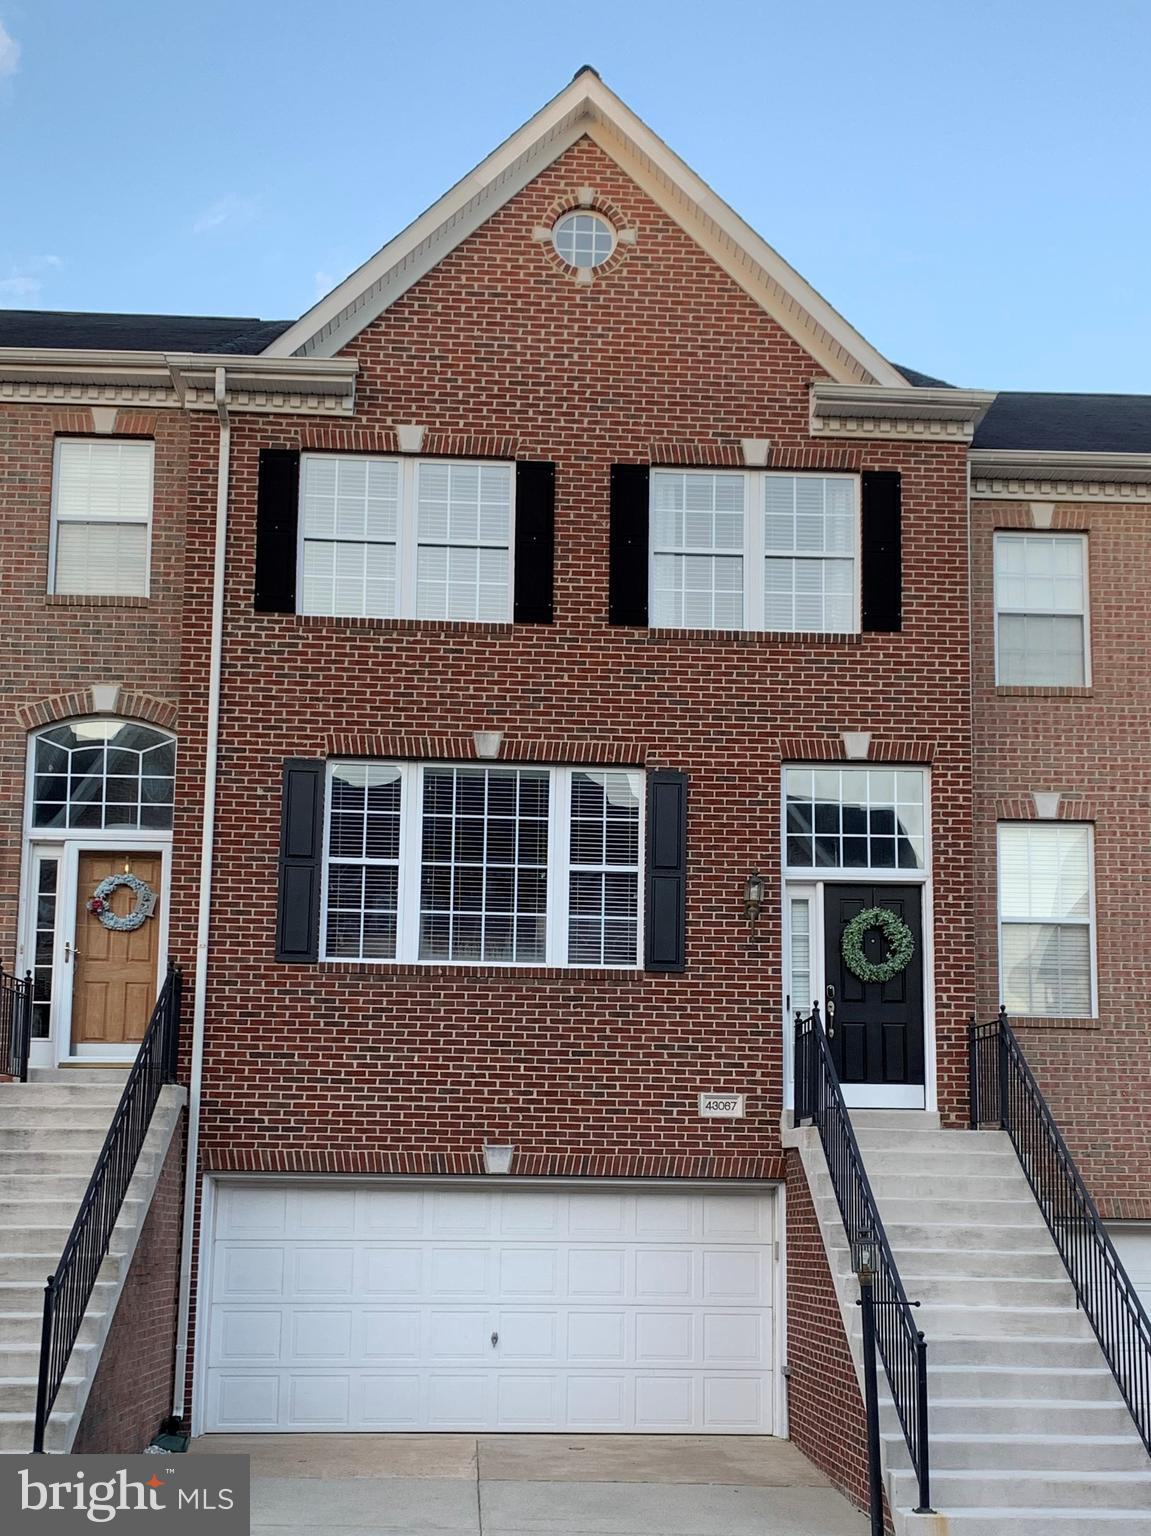 MOVE IN READY!!! Fabulous 3 bedroom, 3.5 bath with oversized 2 car garage in sought after Potomac St